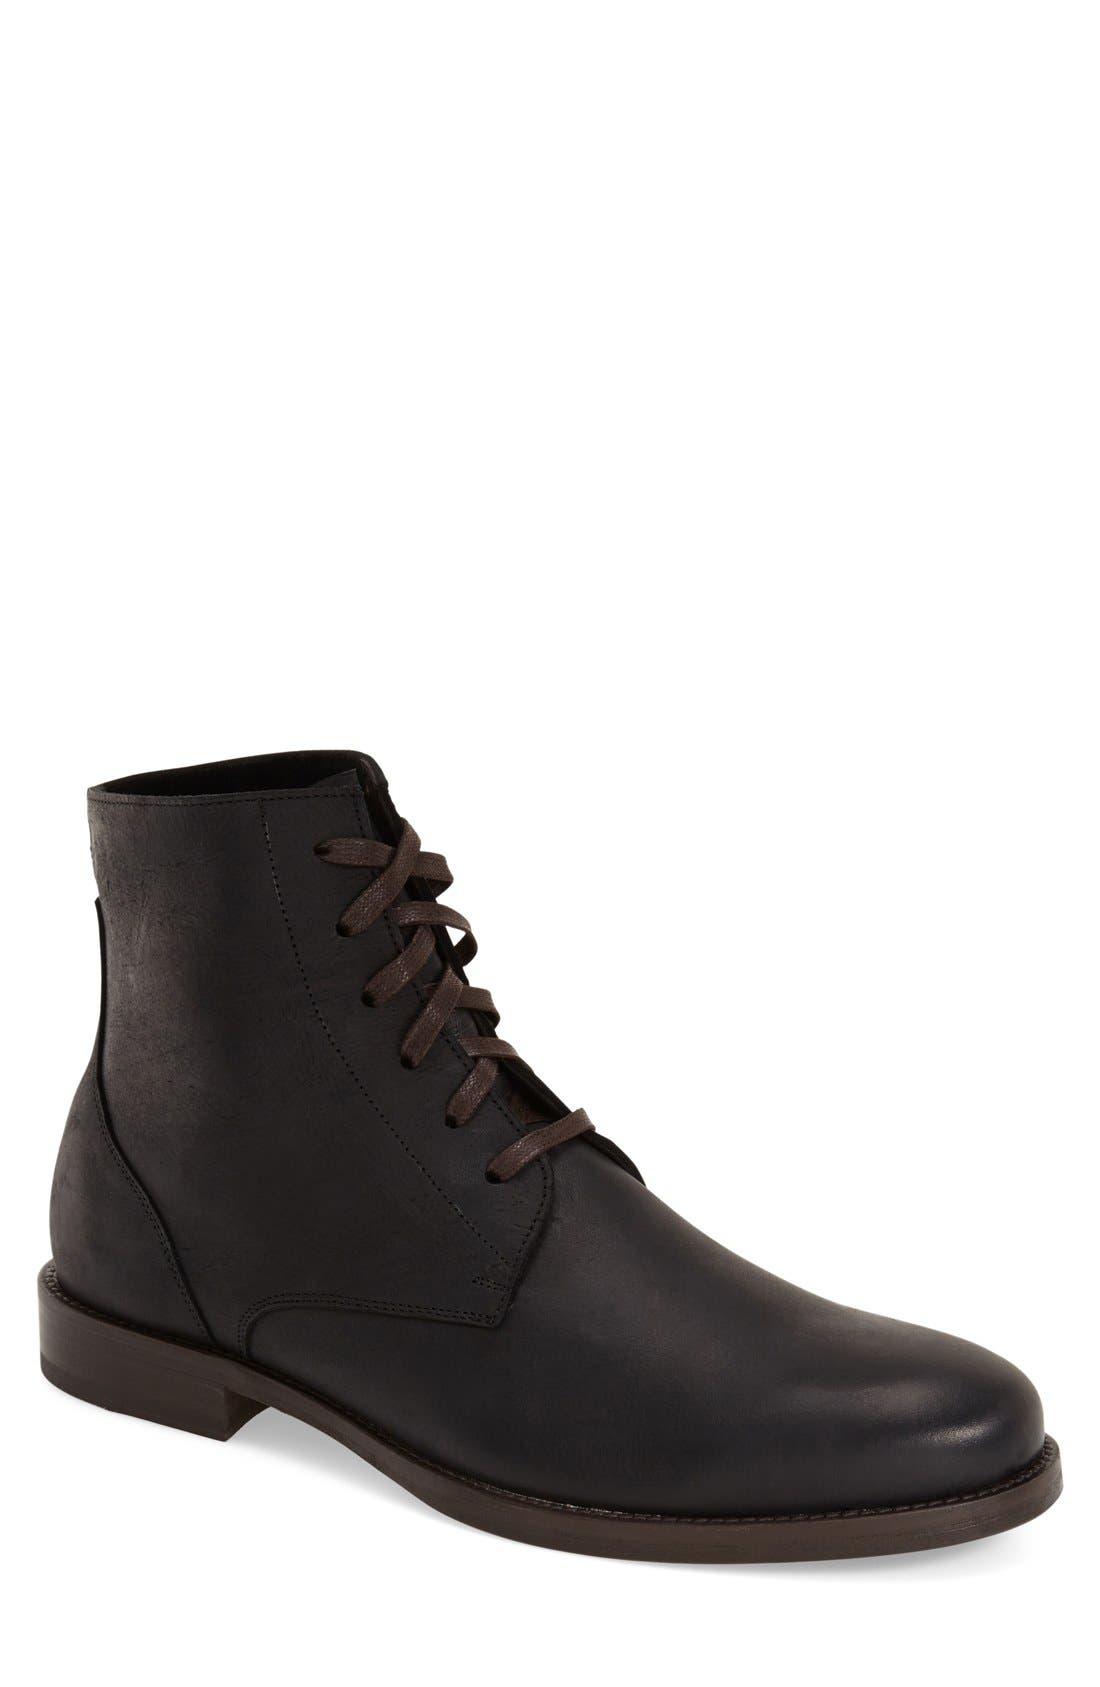 'Stonebreaker' Boot,                         Main,                         color, Black